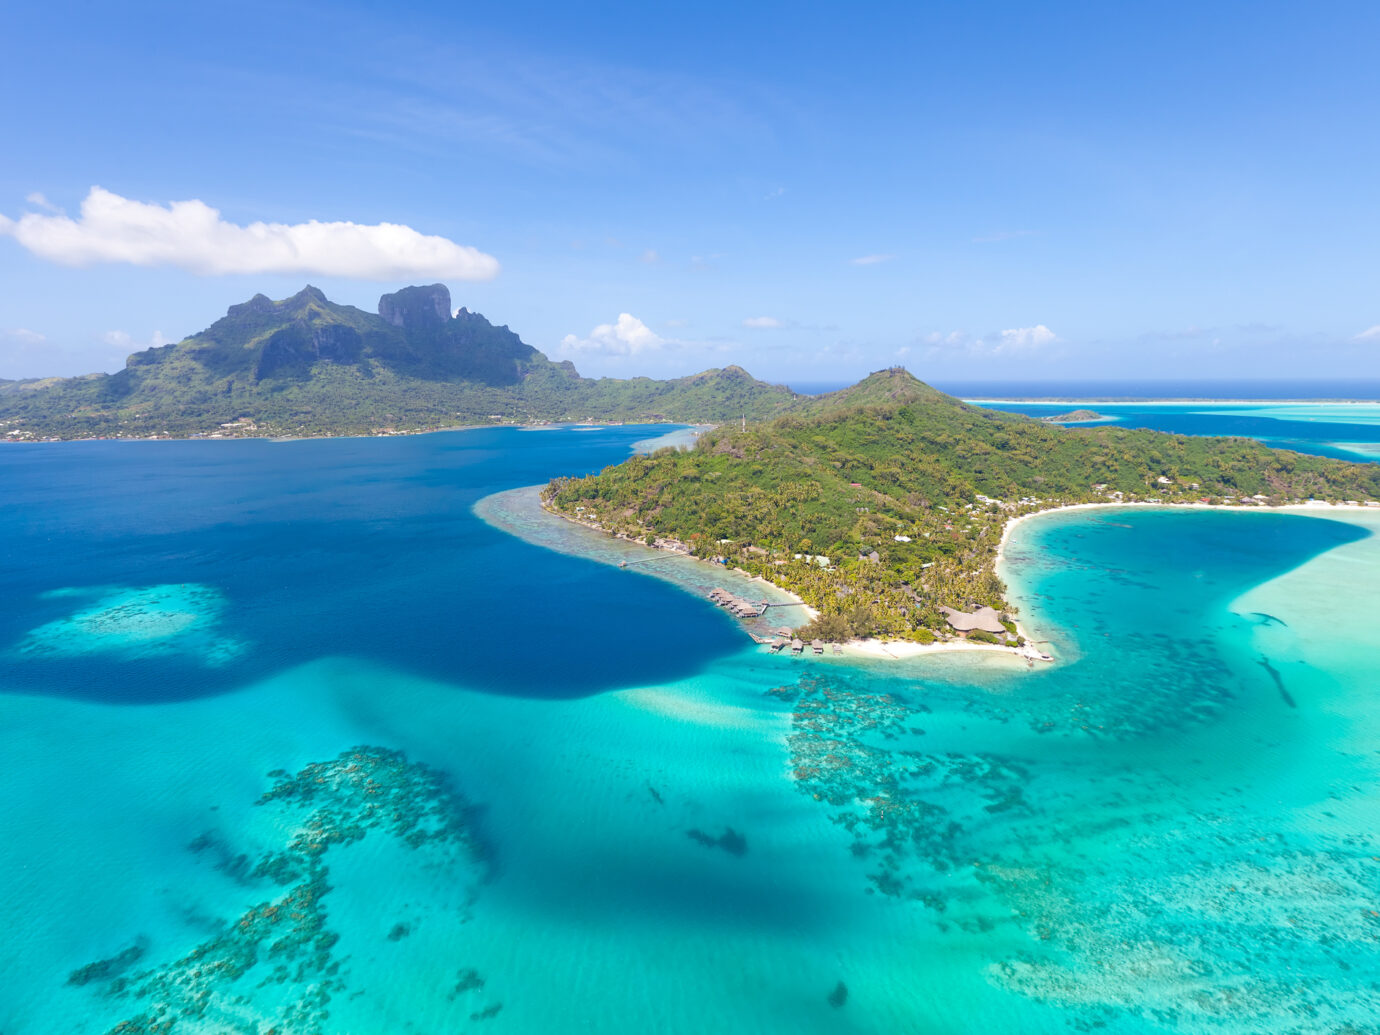 gorgeous view at bora bora island from the helicopter